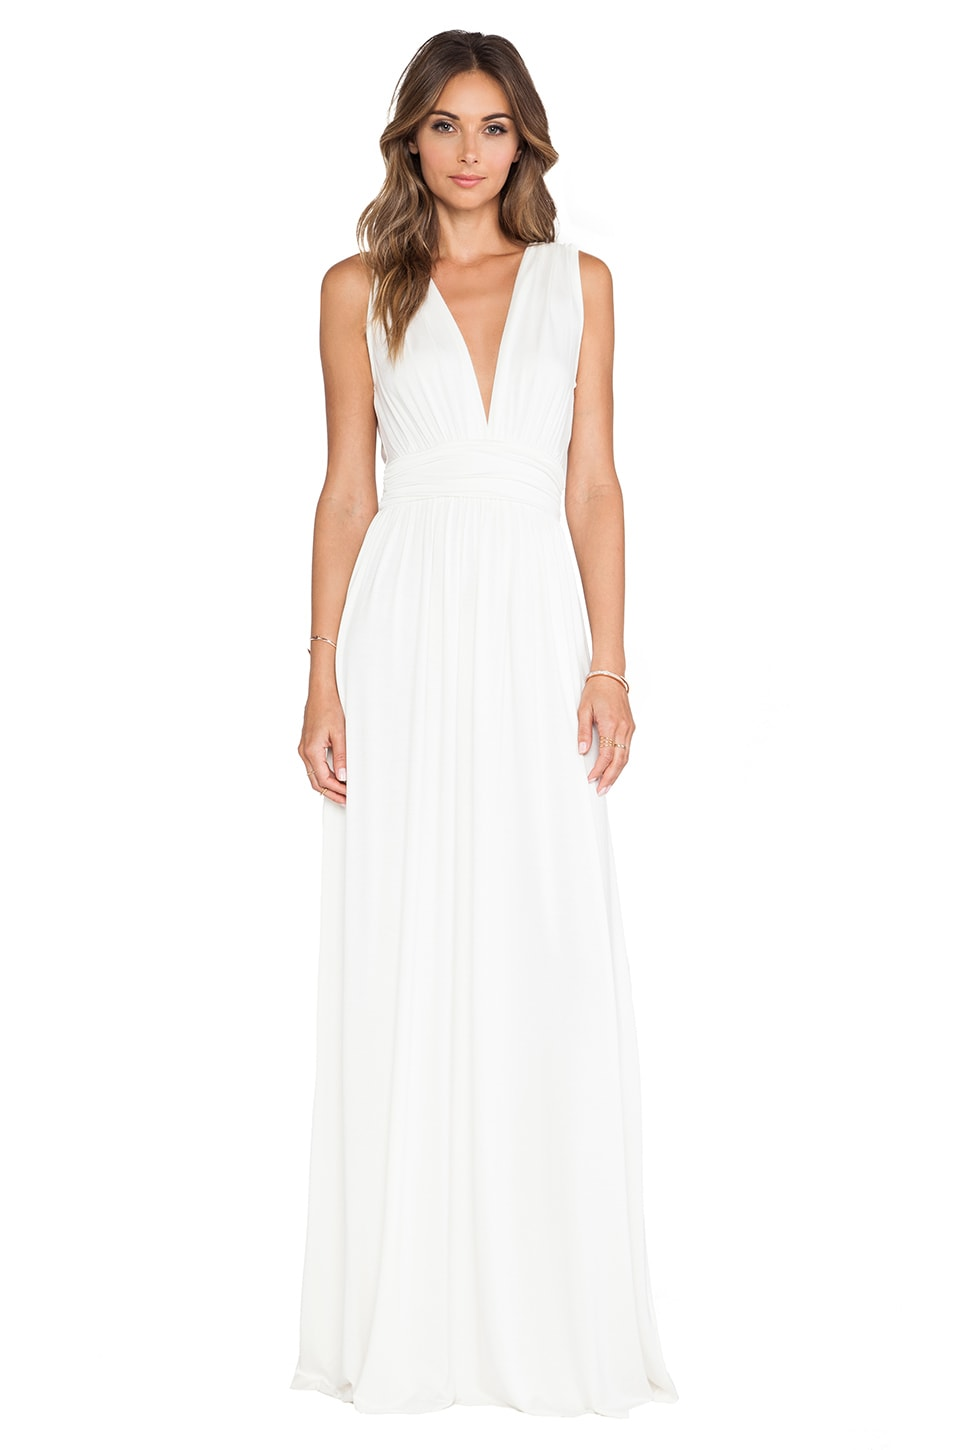 Rachel Pally Giulietta Dress in White